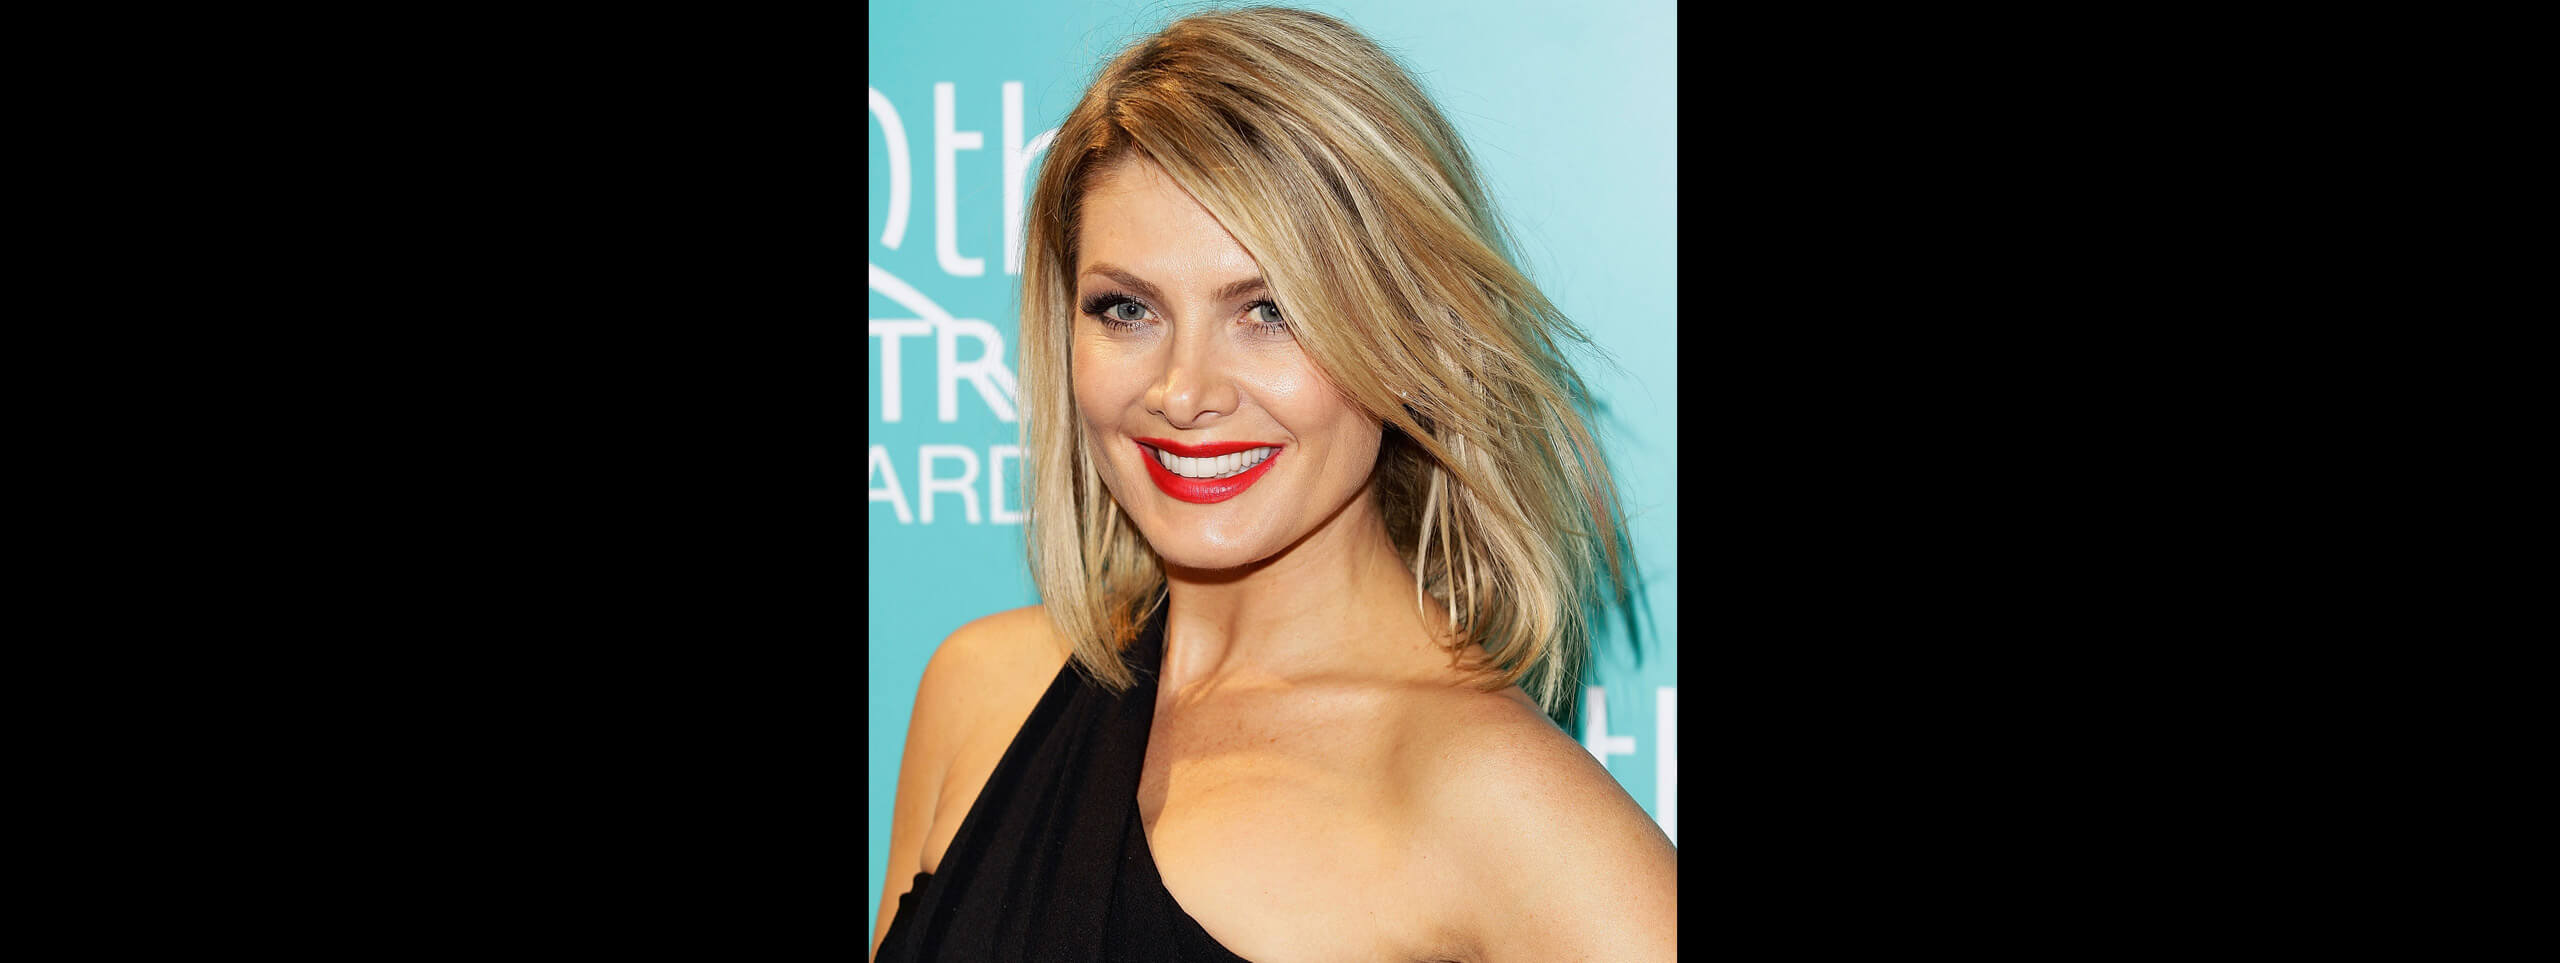 Natalie Bassingthwaighte with short blonde hairstyle